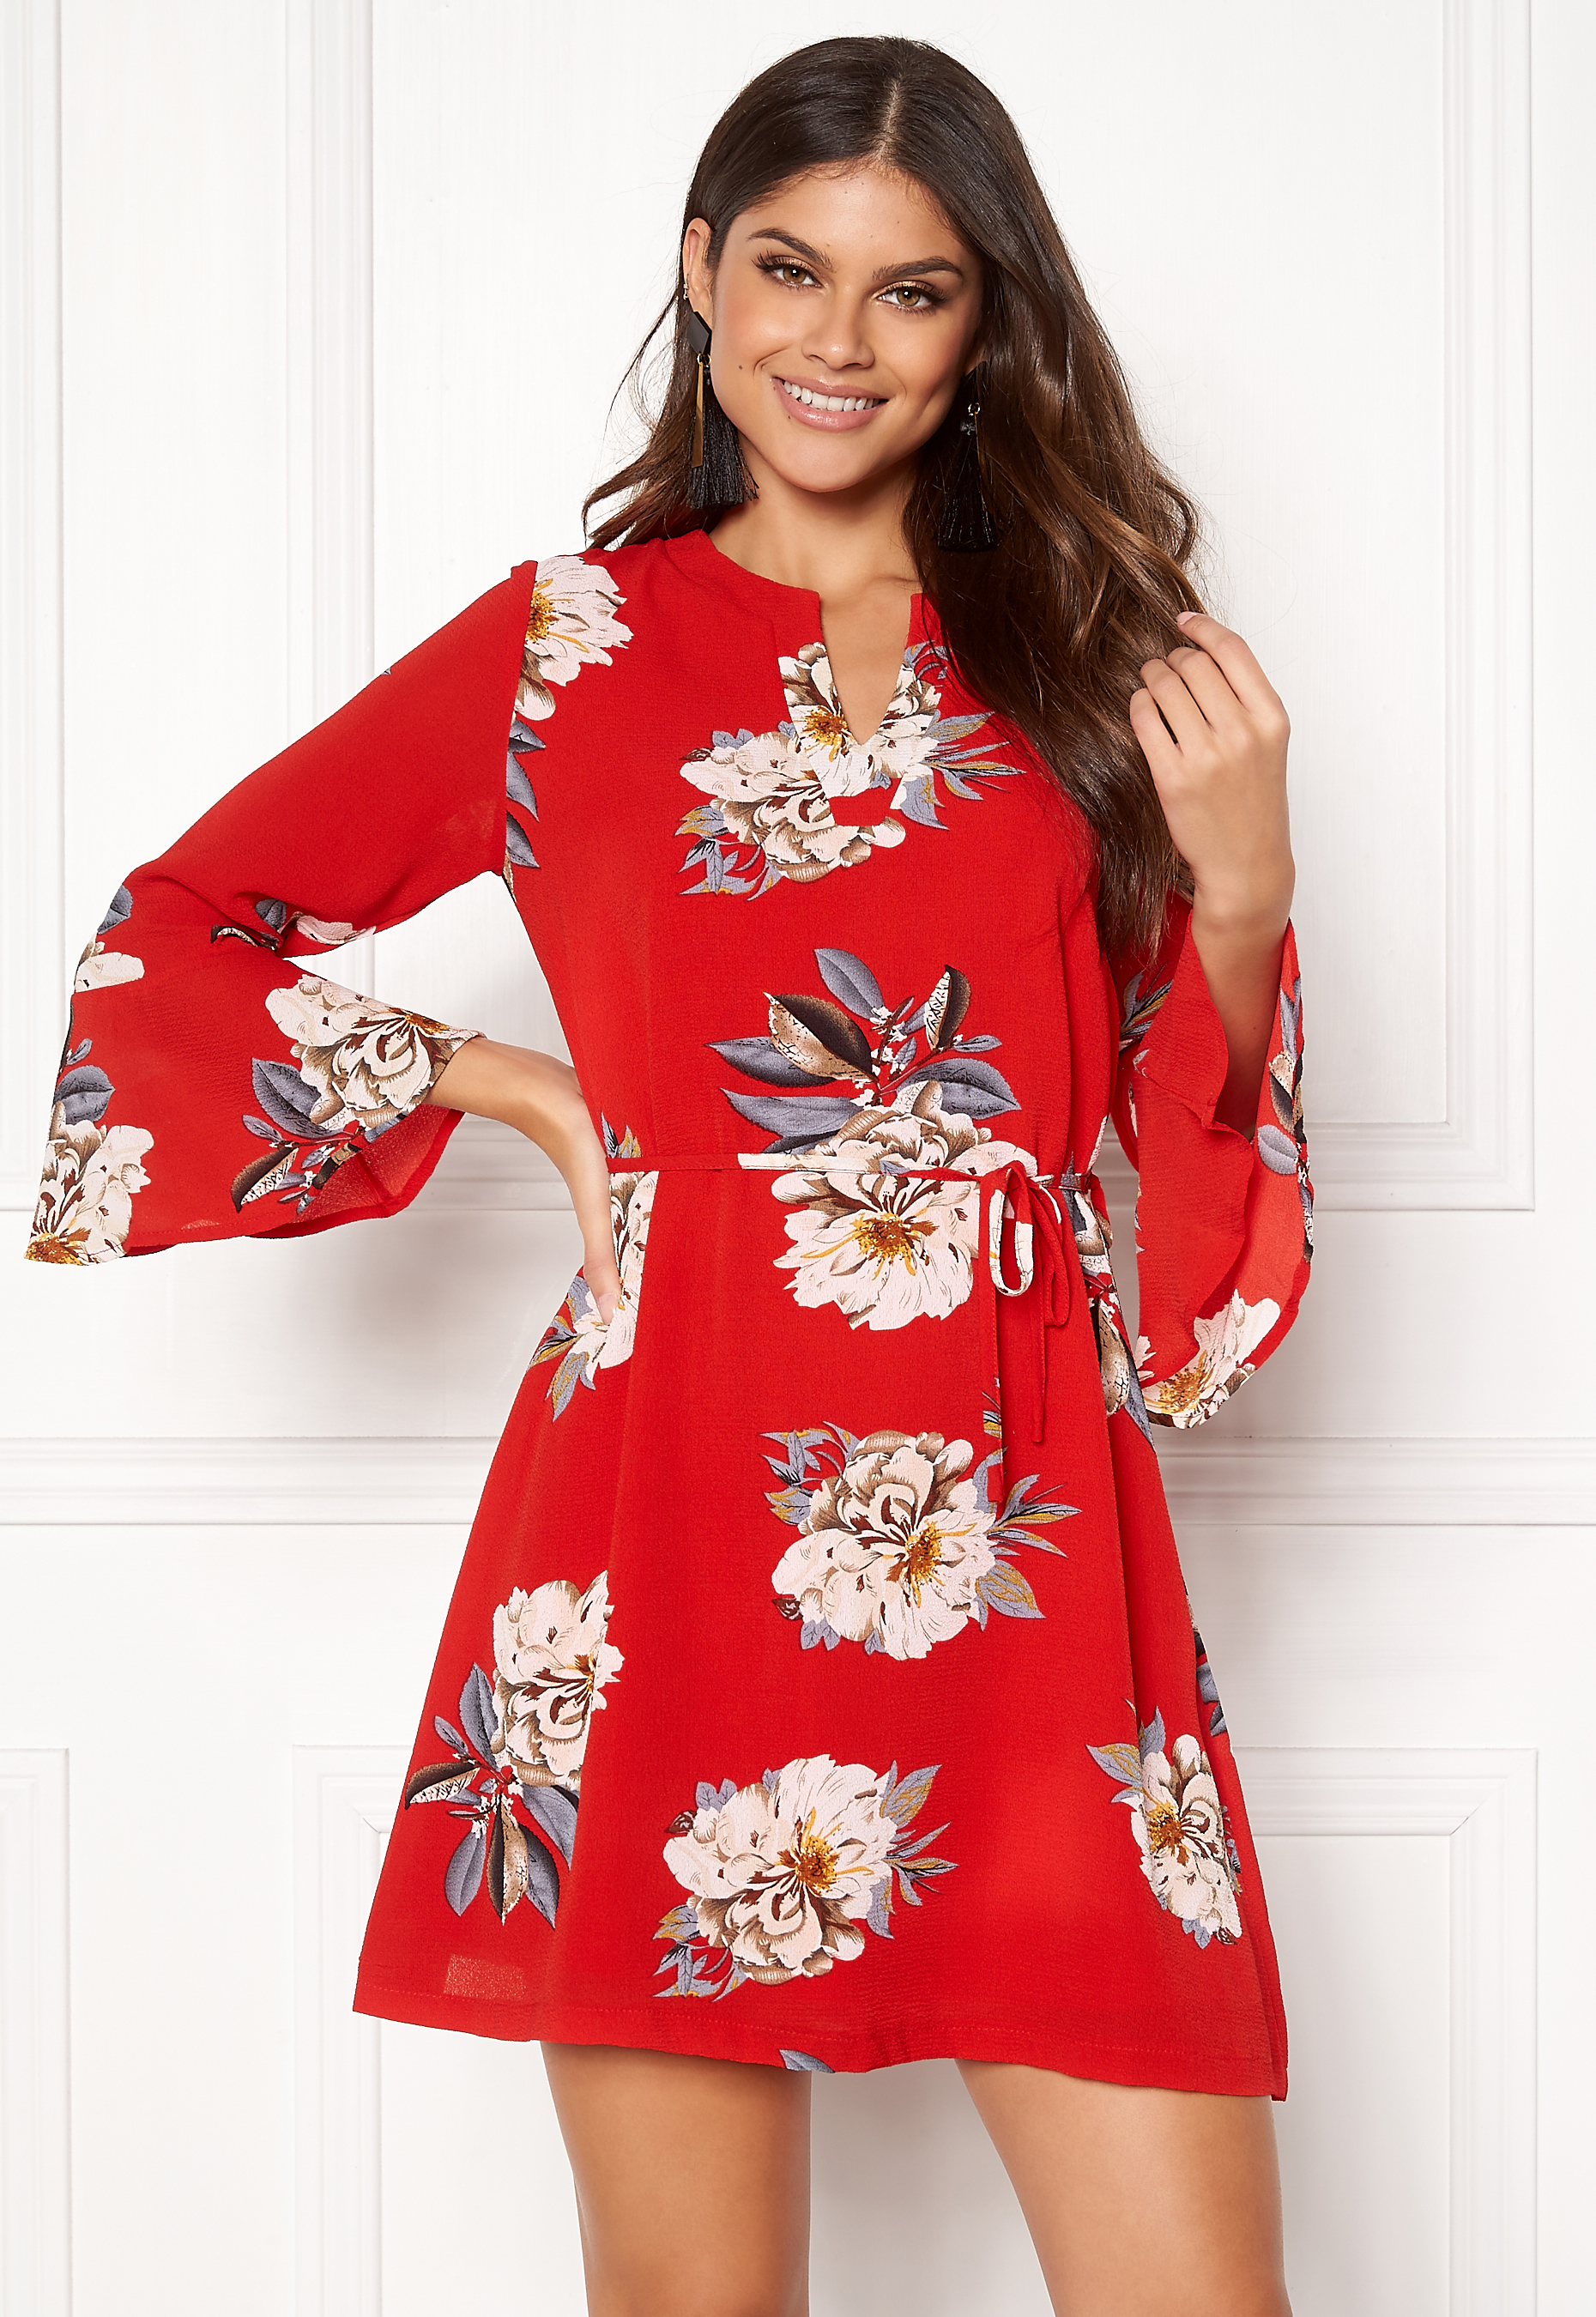 Sisters Point Glans-8 Dress 501 Red Flower - Bubbleroom 2ee6eaa8a00aa